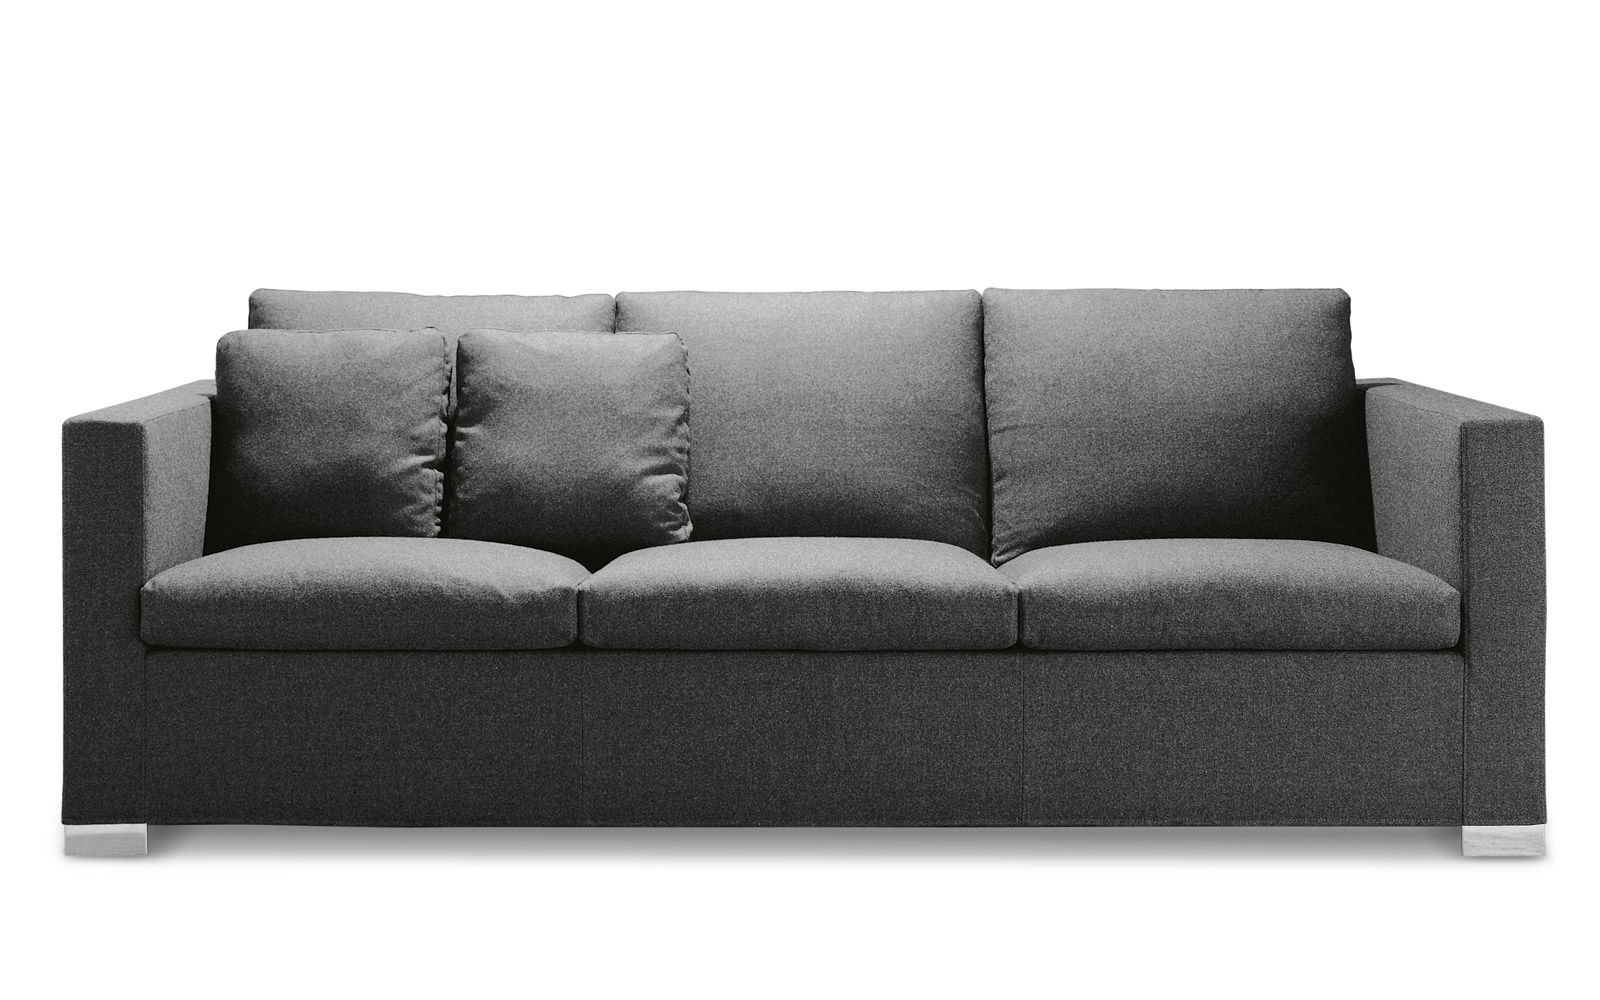 Full Size of Minotti Sofa Alexander List Outlet Hamilton Cad Block Freeman Dimensions Bed Used For Sale India Duvet Andersen Lawrence Deep Suitcase Sofas De Konfigurator Sofa Minotti Sofa